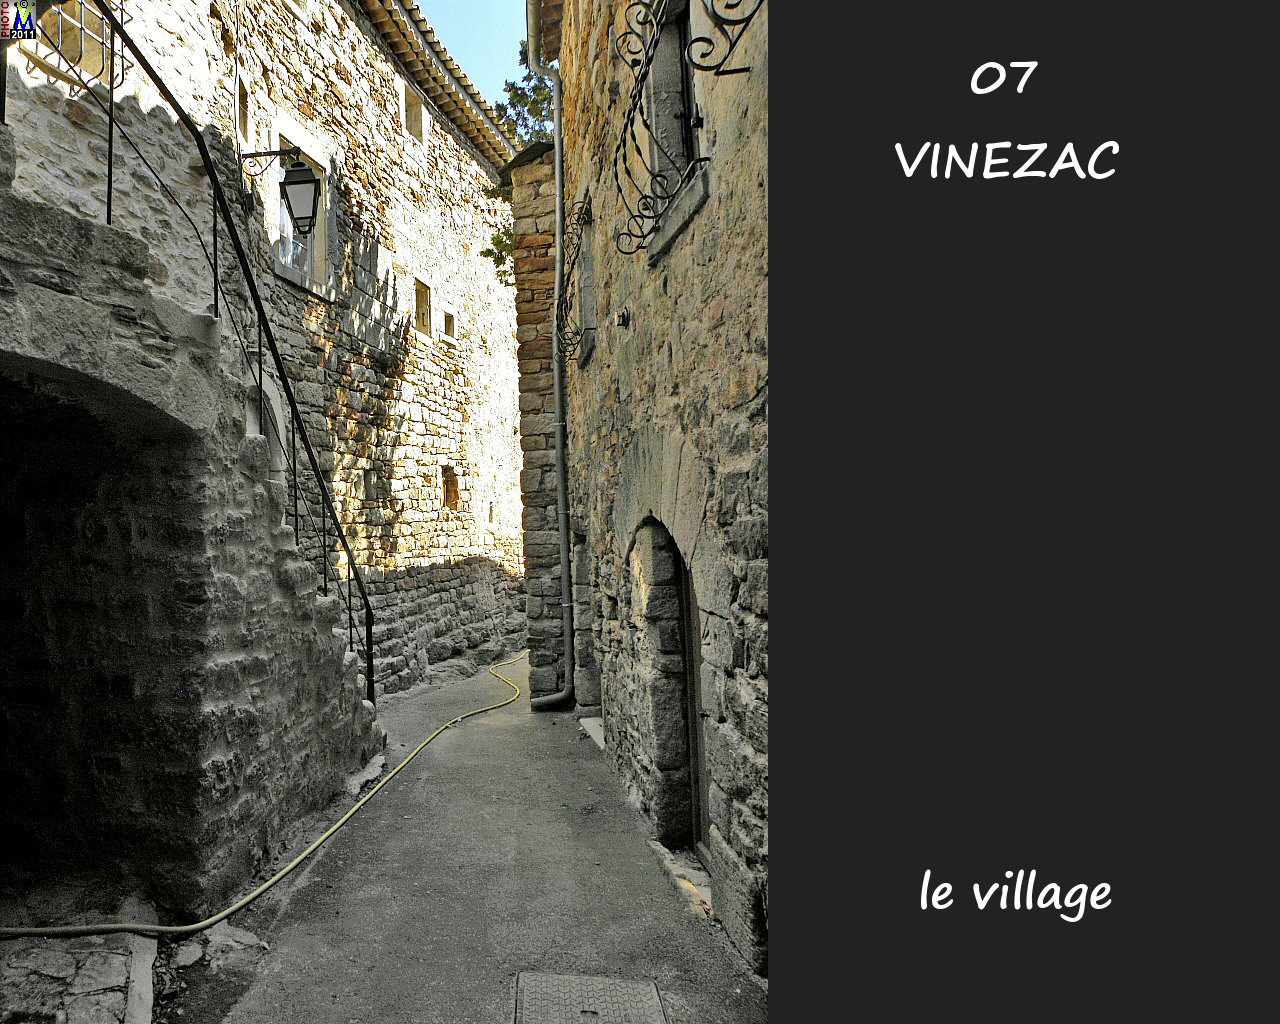 07VINEZAC_village_156.jpg